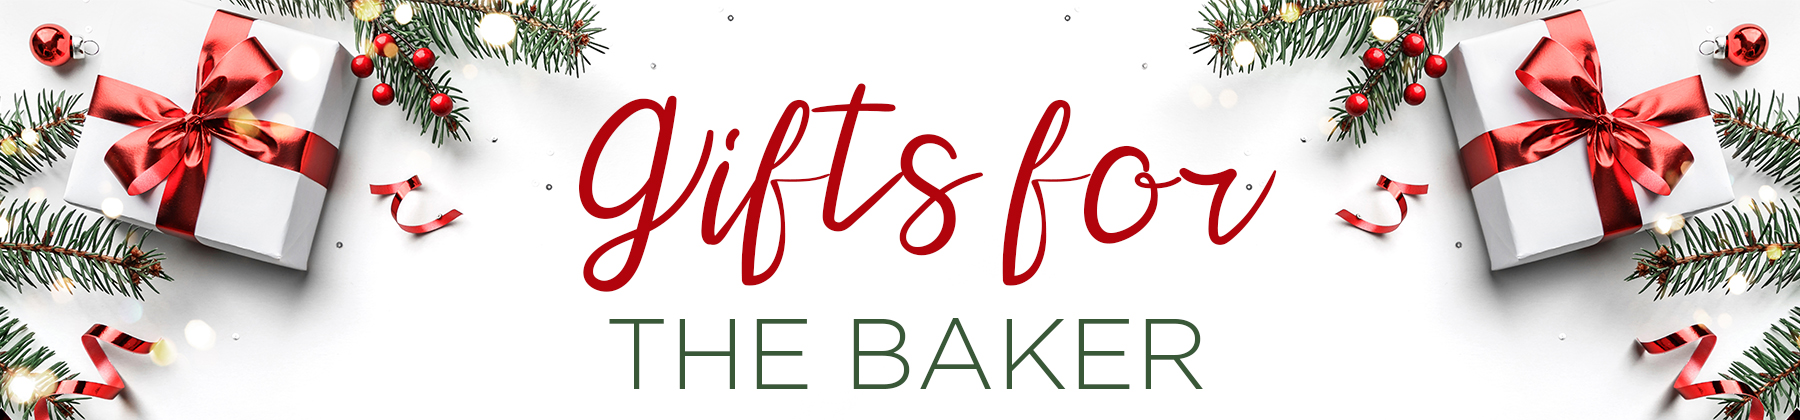 Photo of gifts for Holiday Gift Guide - Gifts for the Baker